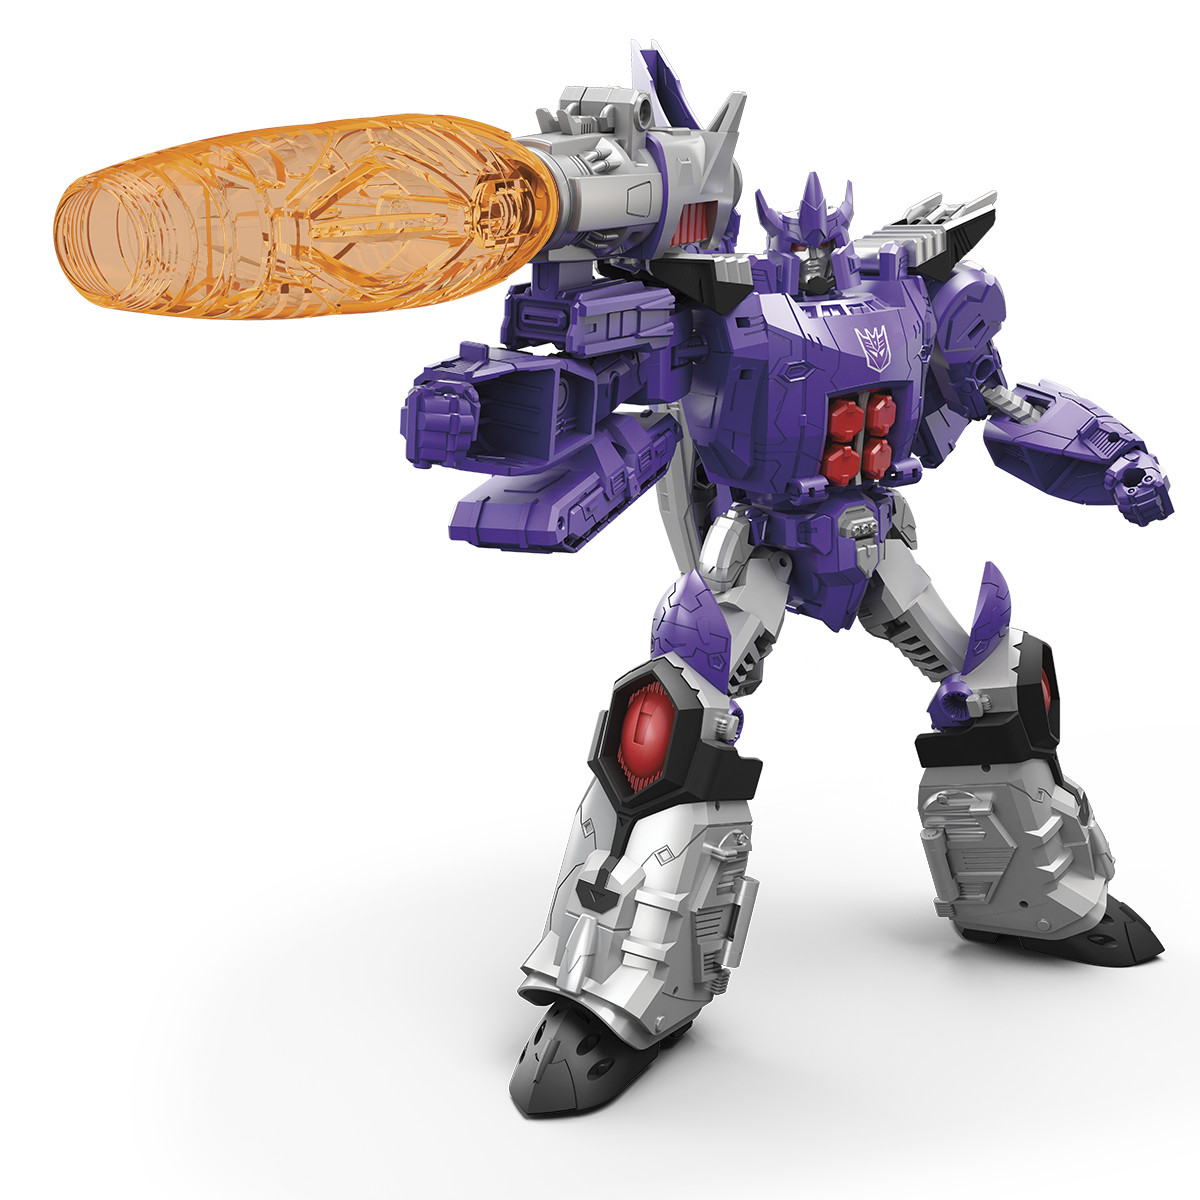 Clip combiner machinima. The coolest toys statues